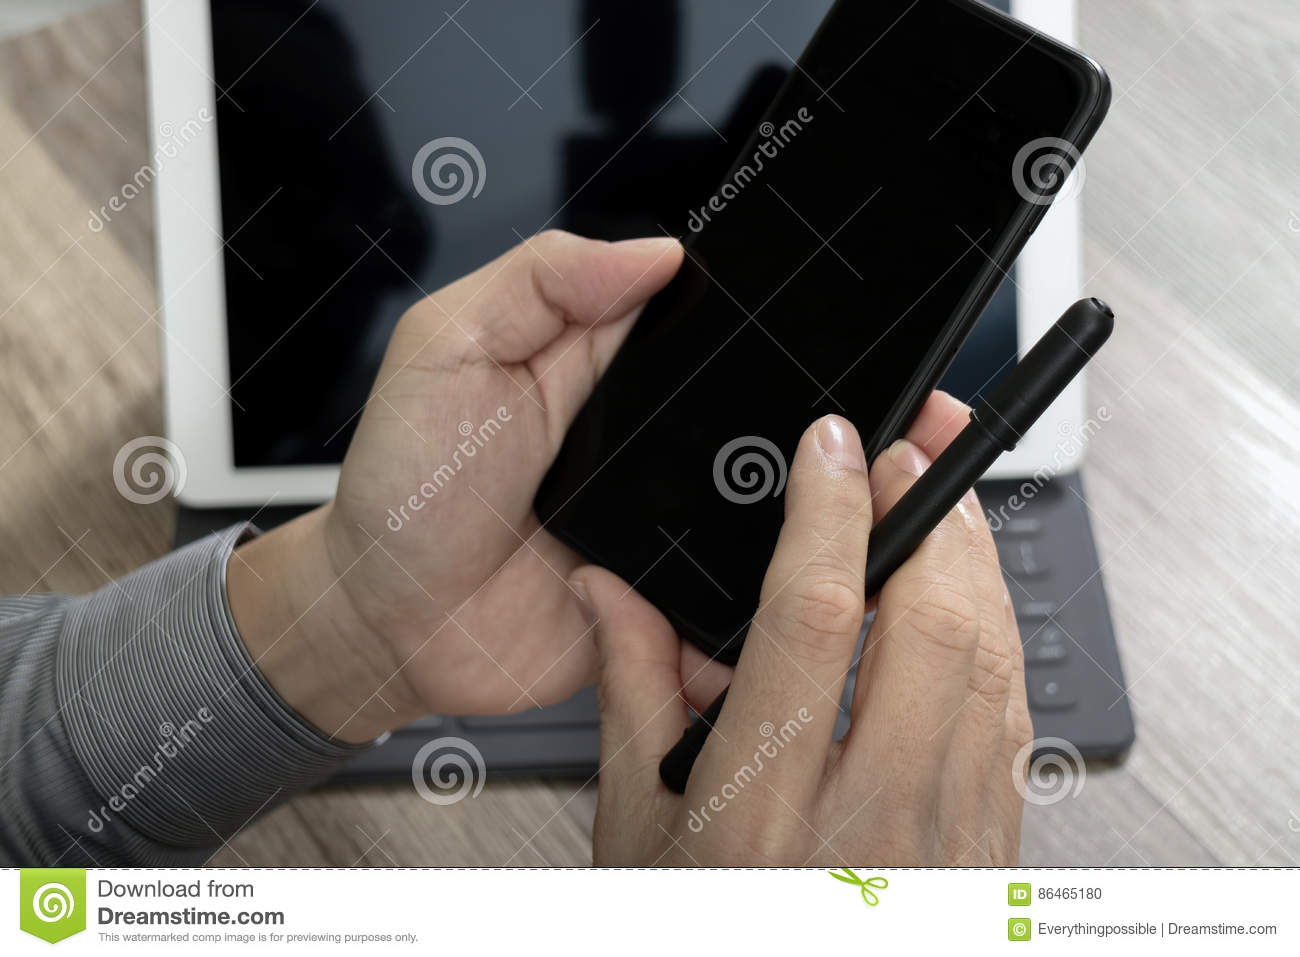 Hand using mobile payments online shopping,omni channel,icon customer network,in modern office wooden desk, blank interface screen